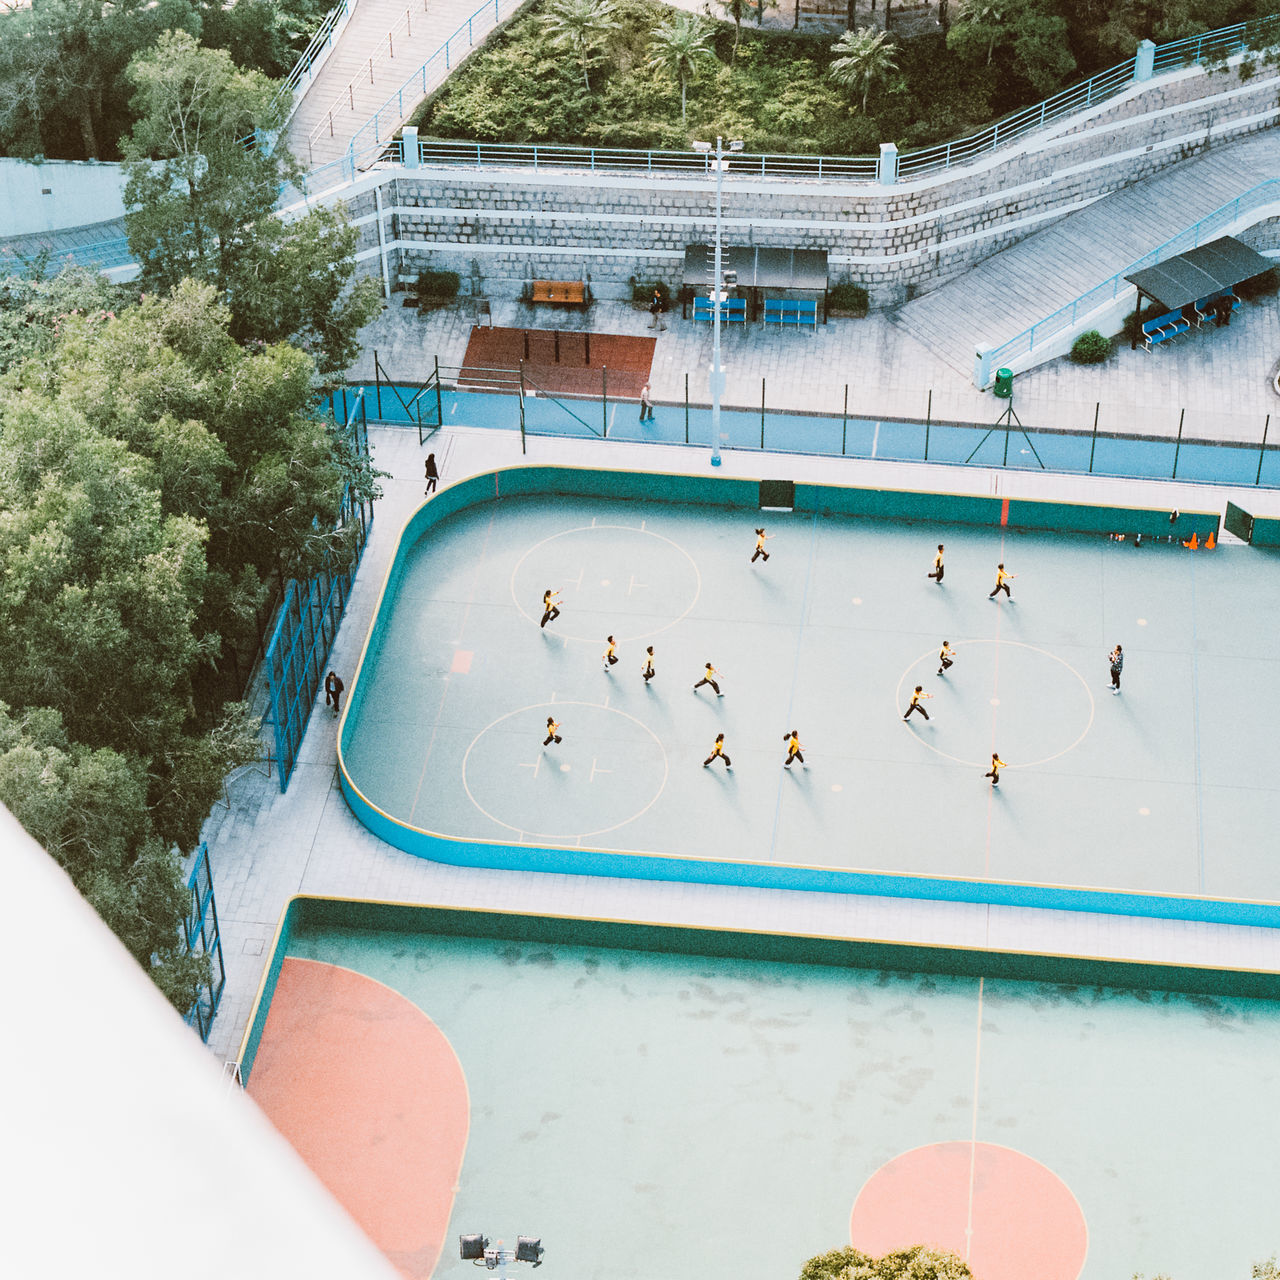 High Angle View Of People Practicing At Sports Venue